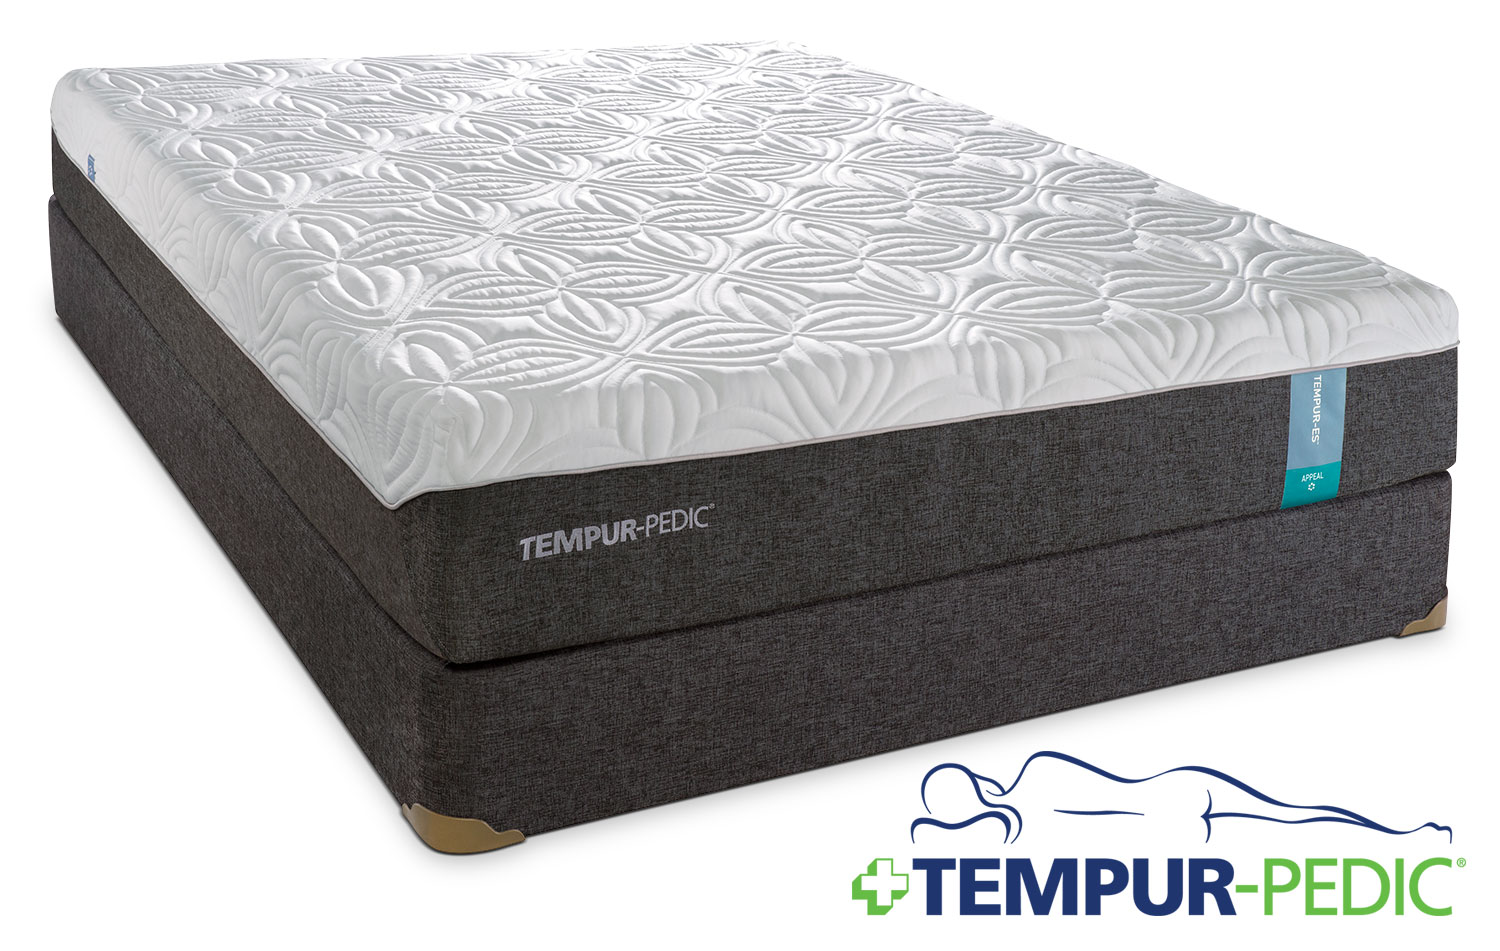 Tempur-Pedic Appeal Cushion Firm Twin XL Mattress and Boxspring Set